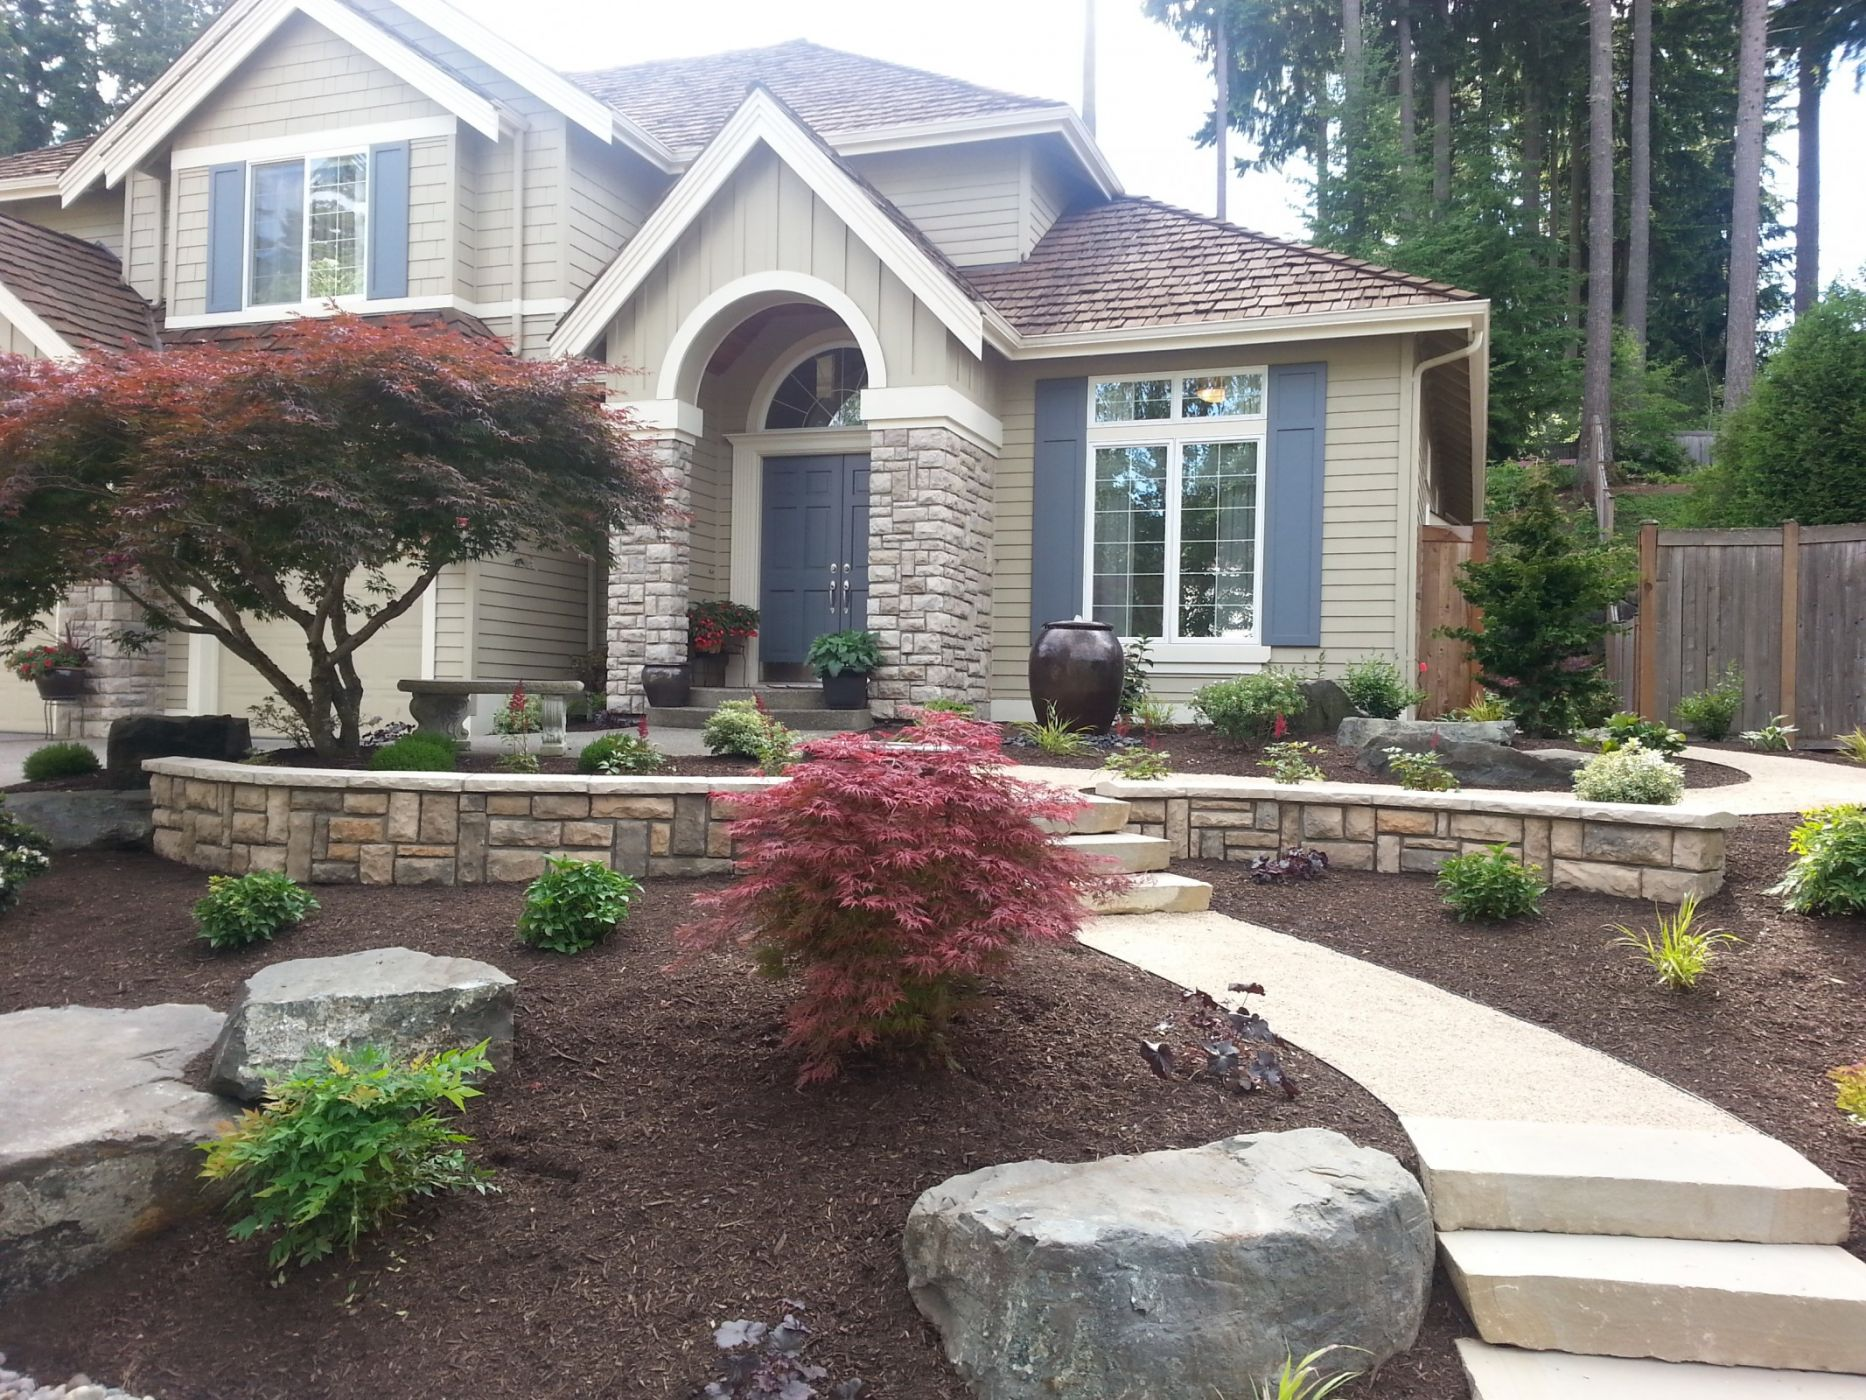 Janika landscaping ideas front yard illinois here for Small front of house landscaping